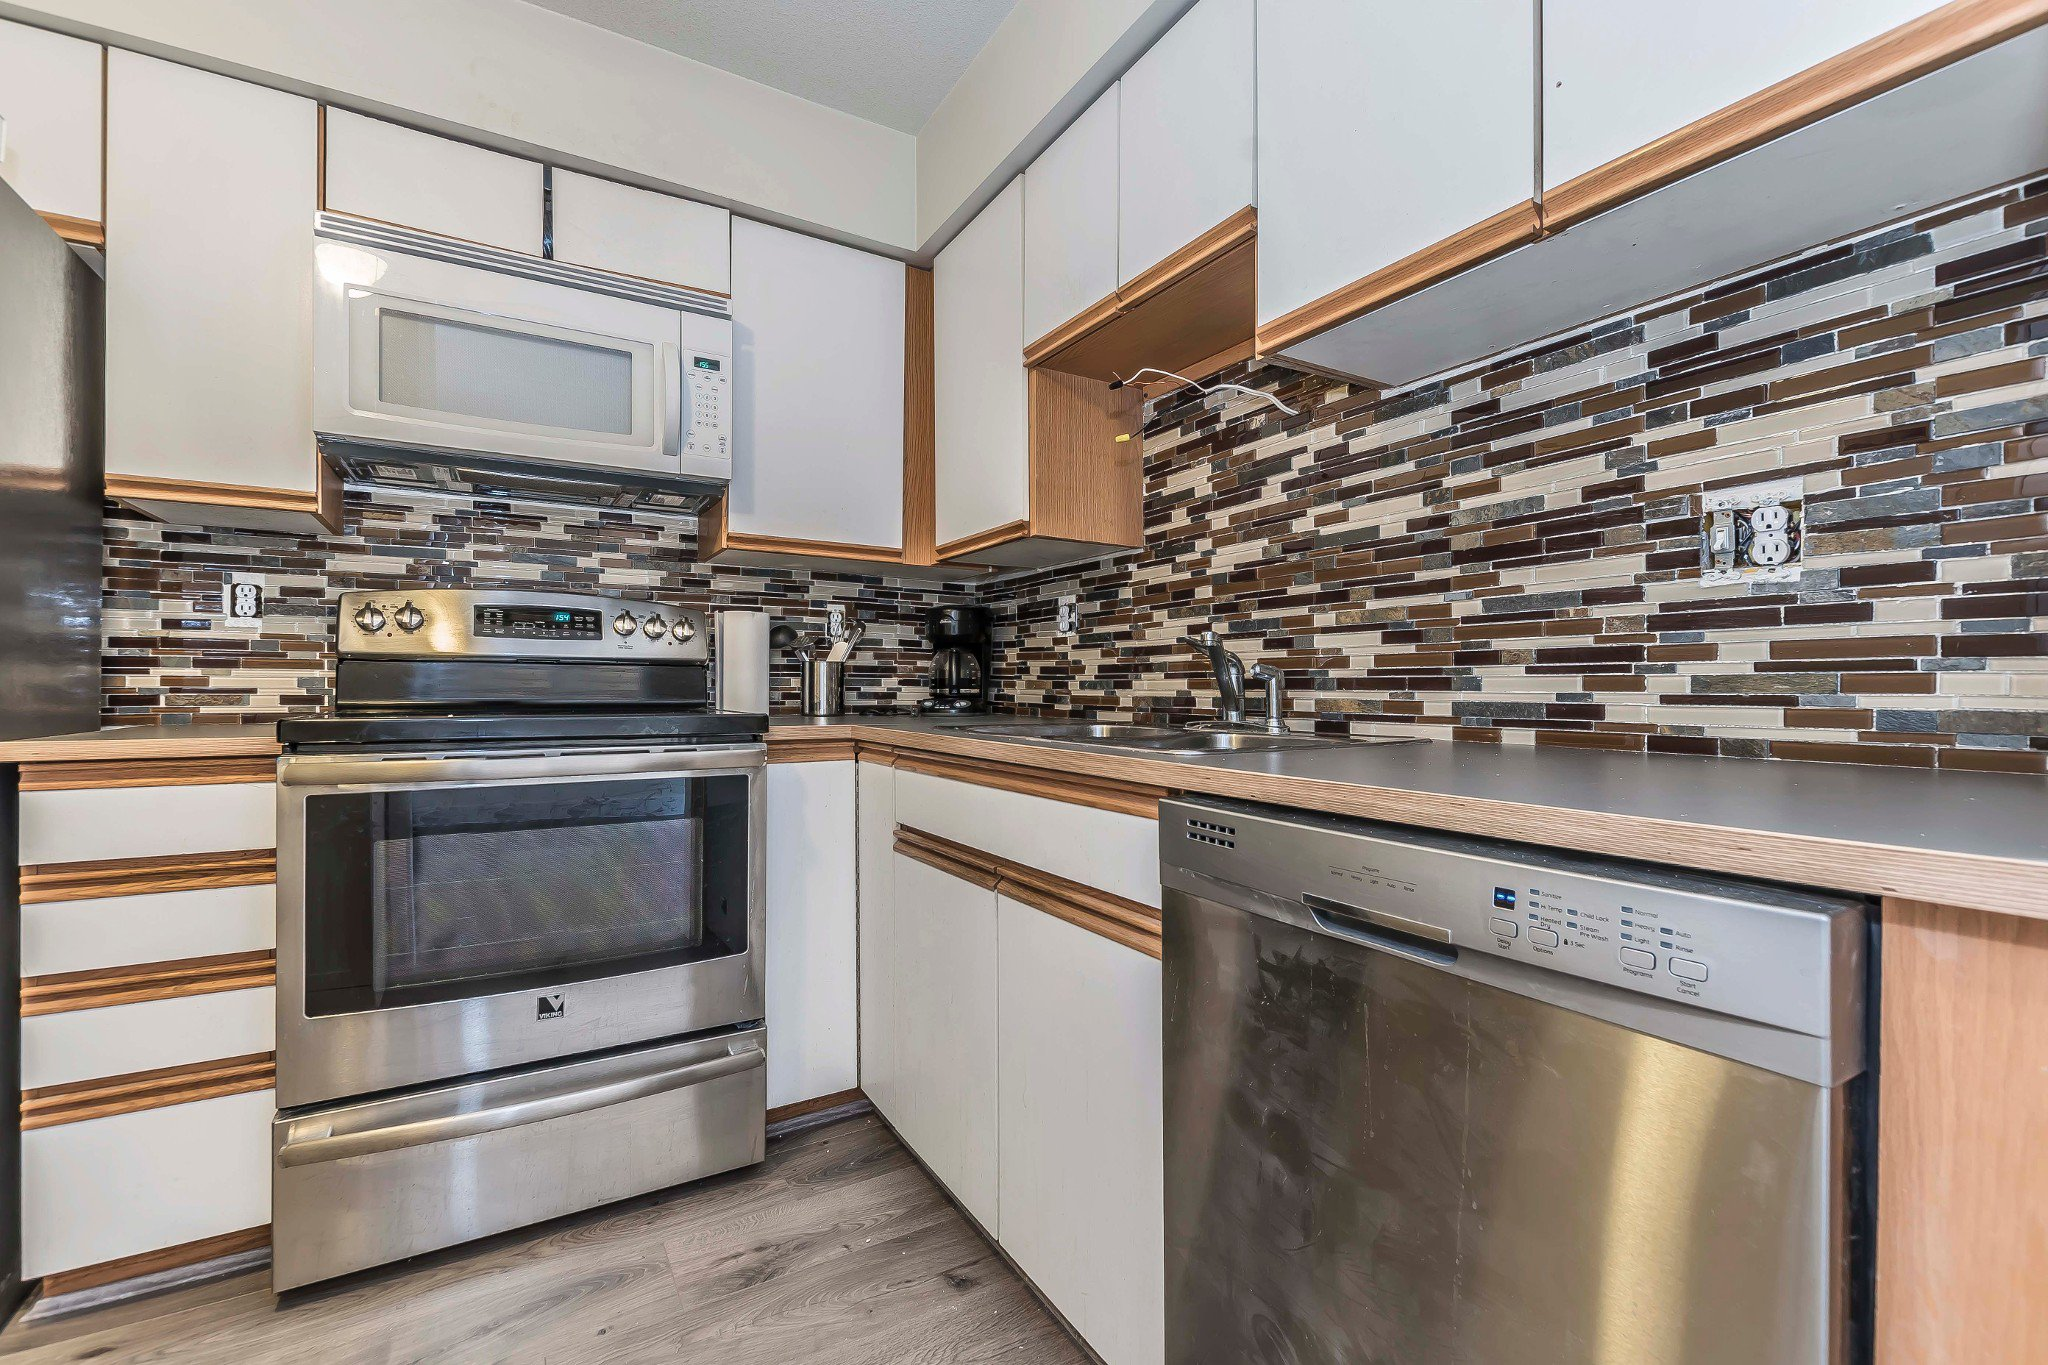 Photo 7: Photos: 305 9186 Edward Street in Chilliwack: Condo for sale : MLS®# R2218862